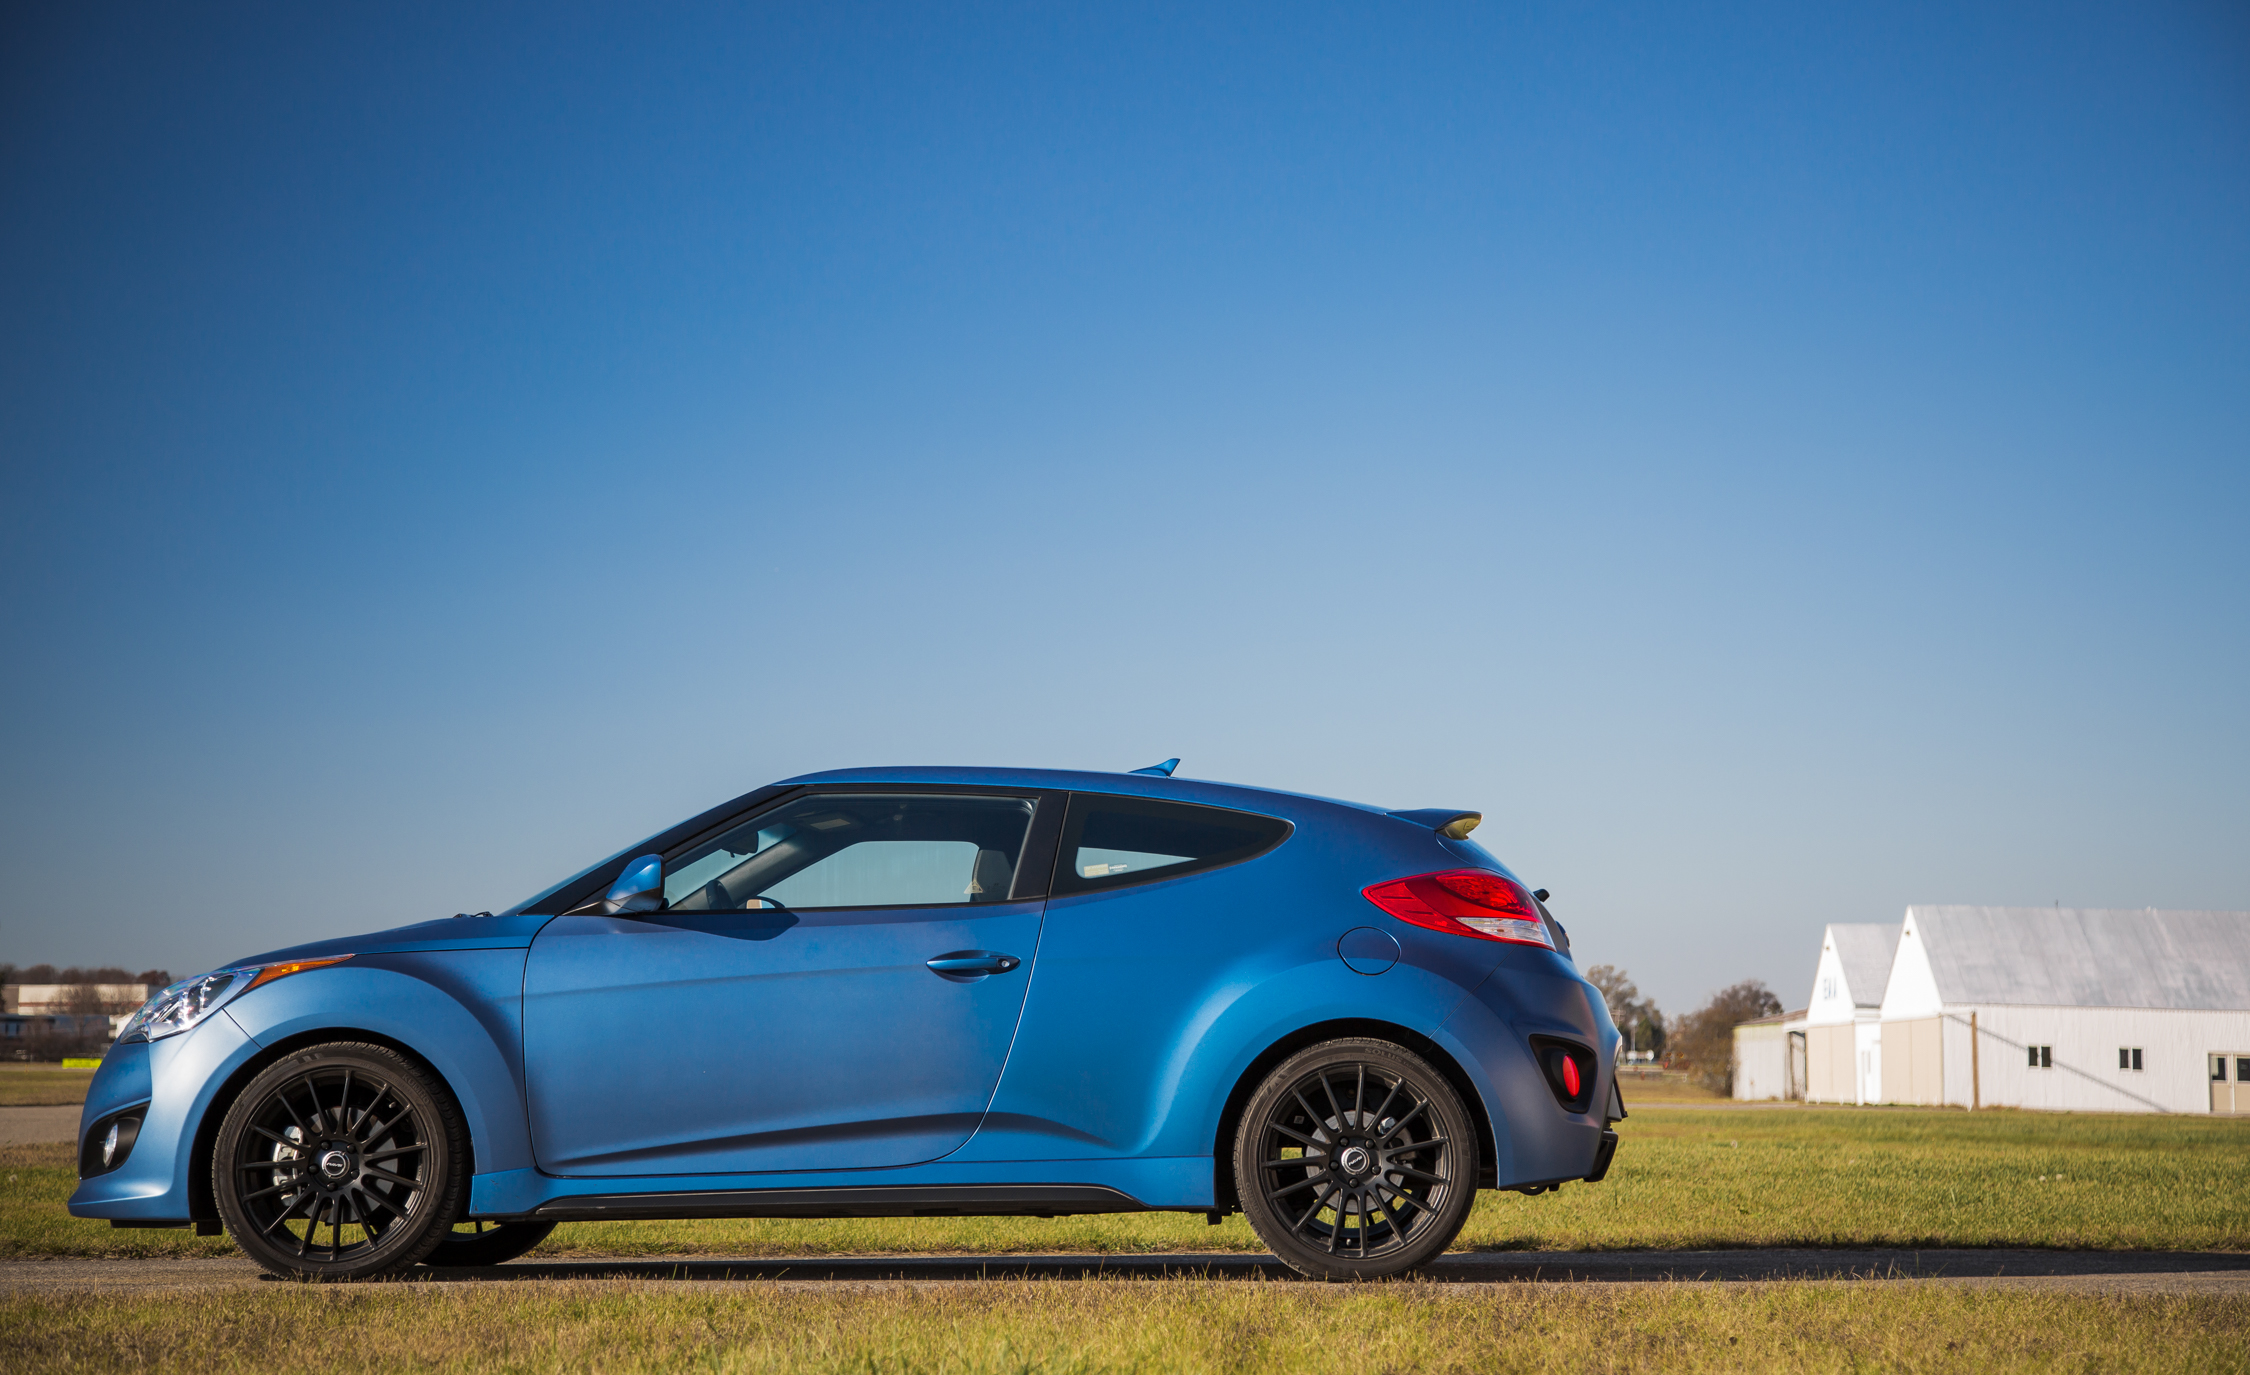 2016 Hyundai Veloster Turbo Rally Edition Exterior Full Side